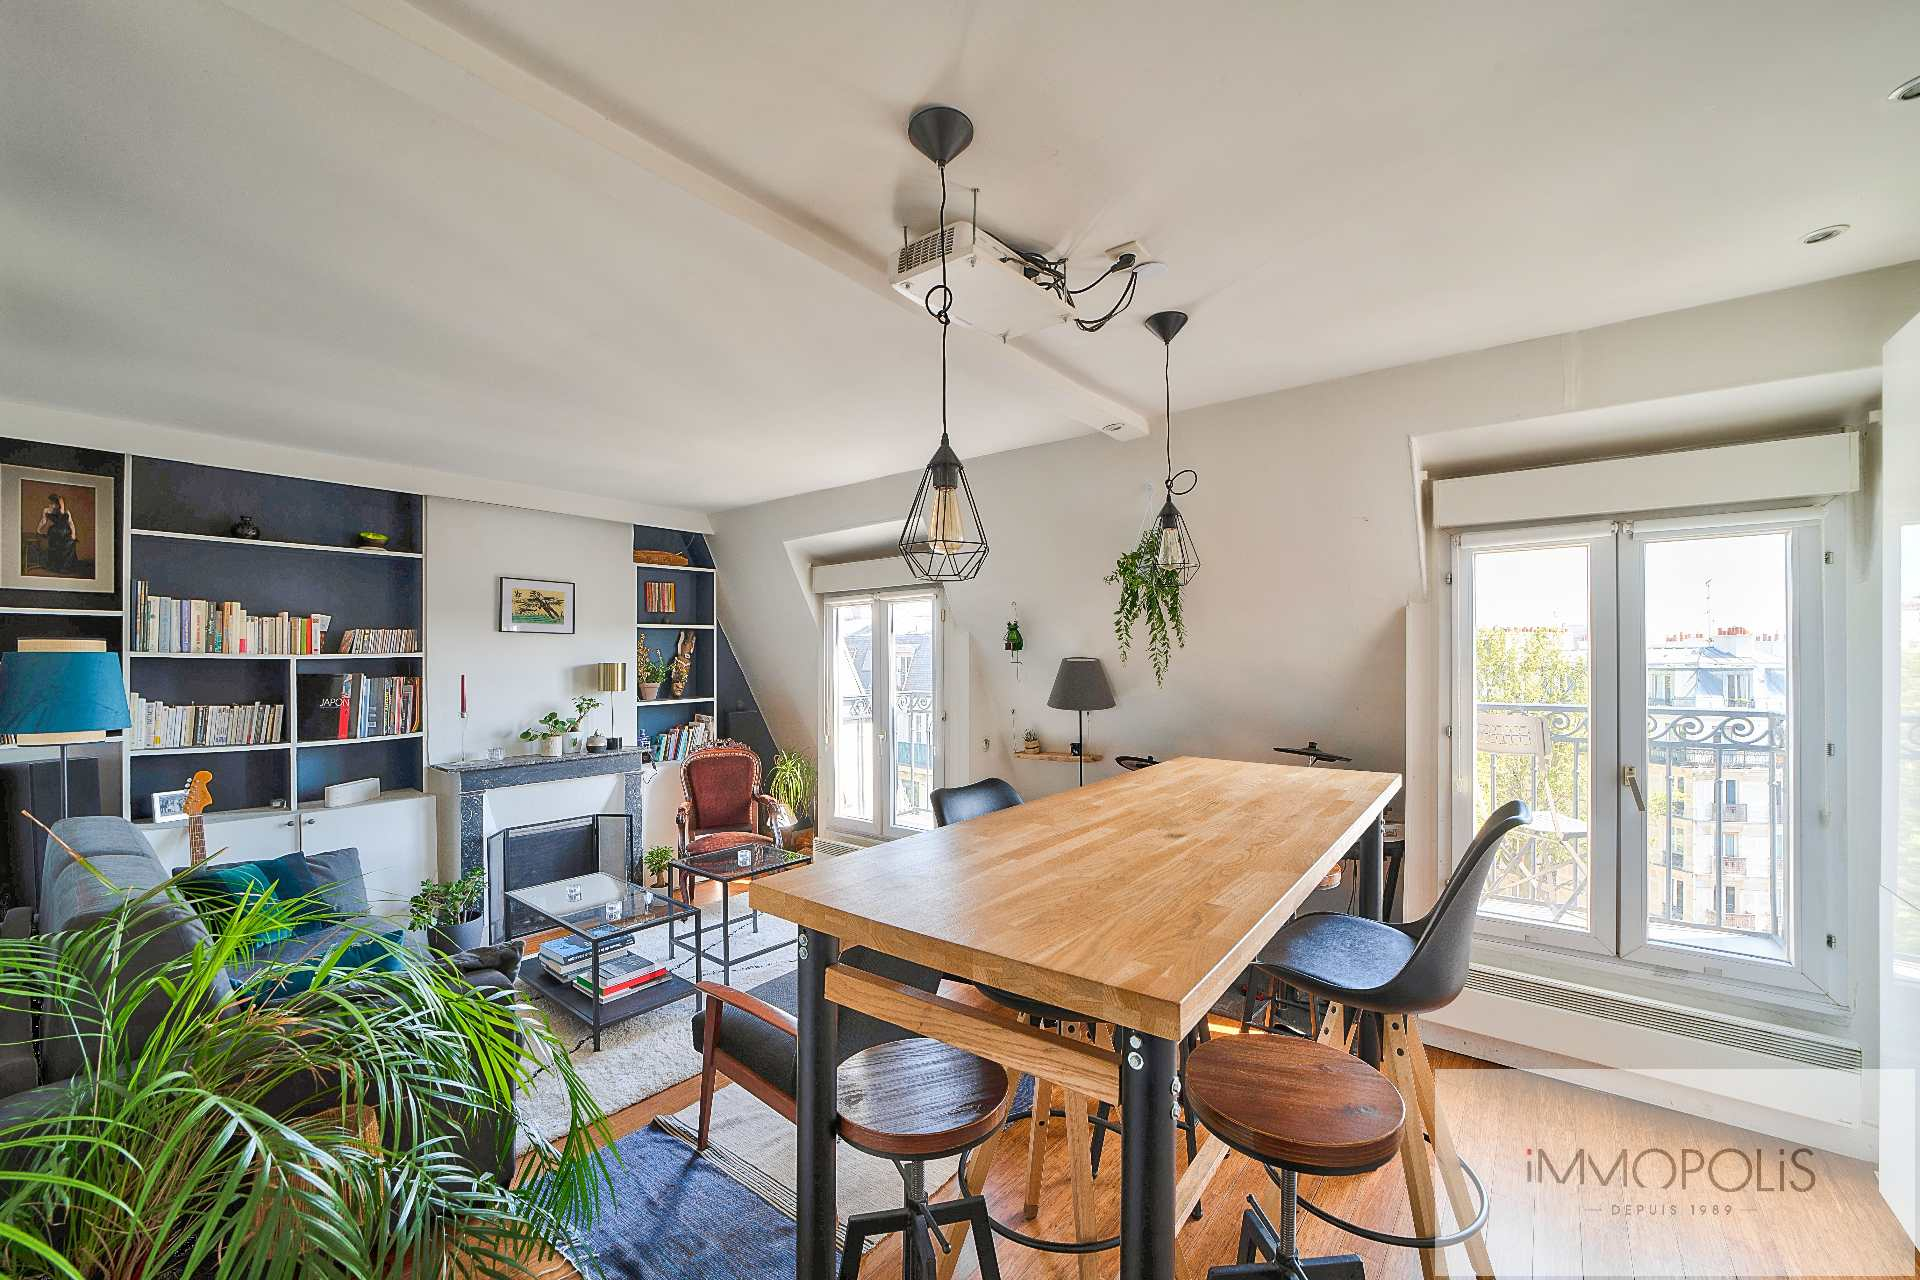 Beautiful 2 rooms in 6th and last floor not overlooked, full sun, with 2 balconies! 3